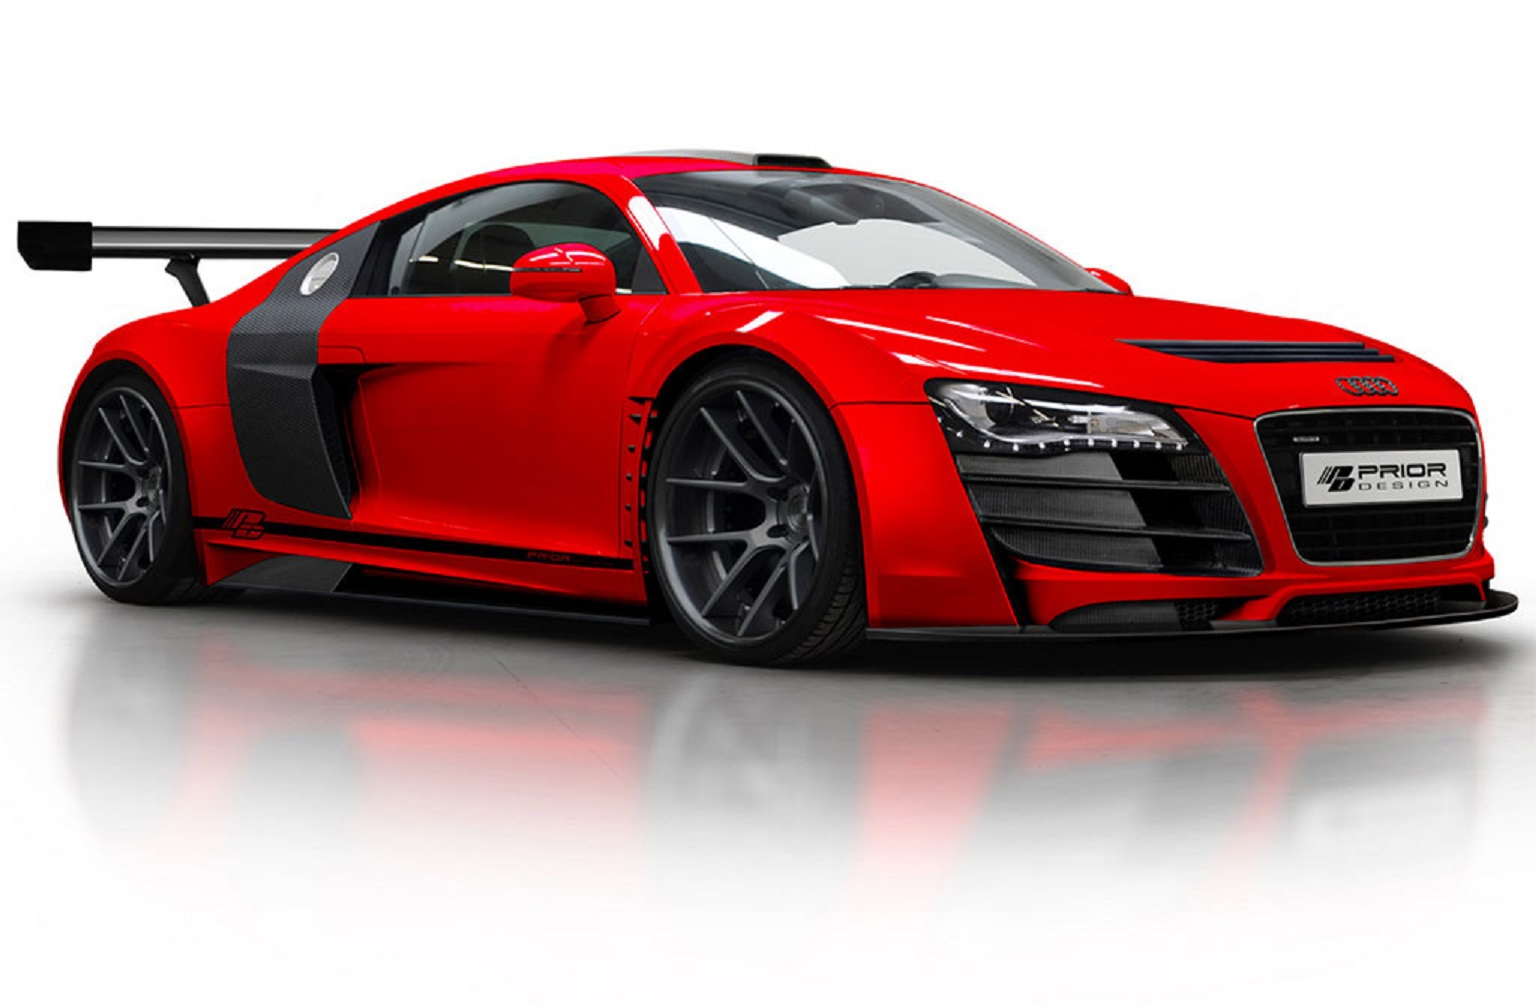 red custom audi r8 pd gt850 wallpaper autos faxo. Black Bedroom Furniture Sets. Home Design Ideas